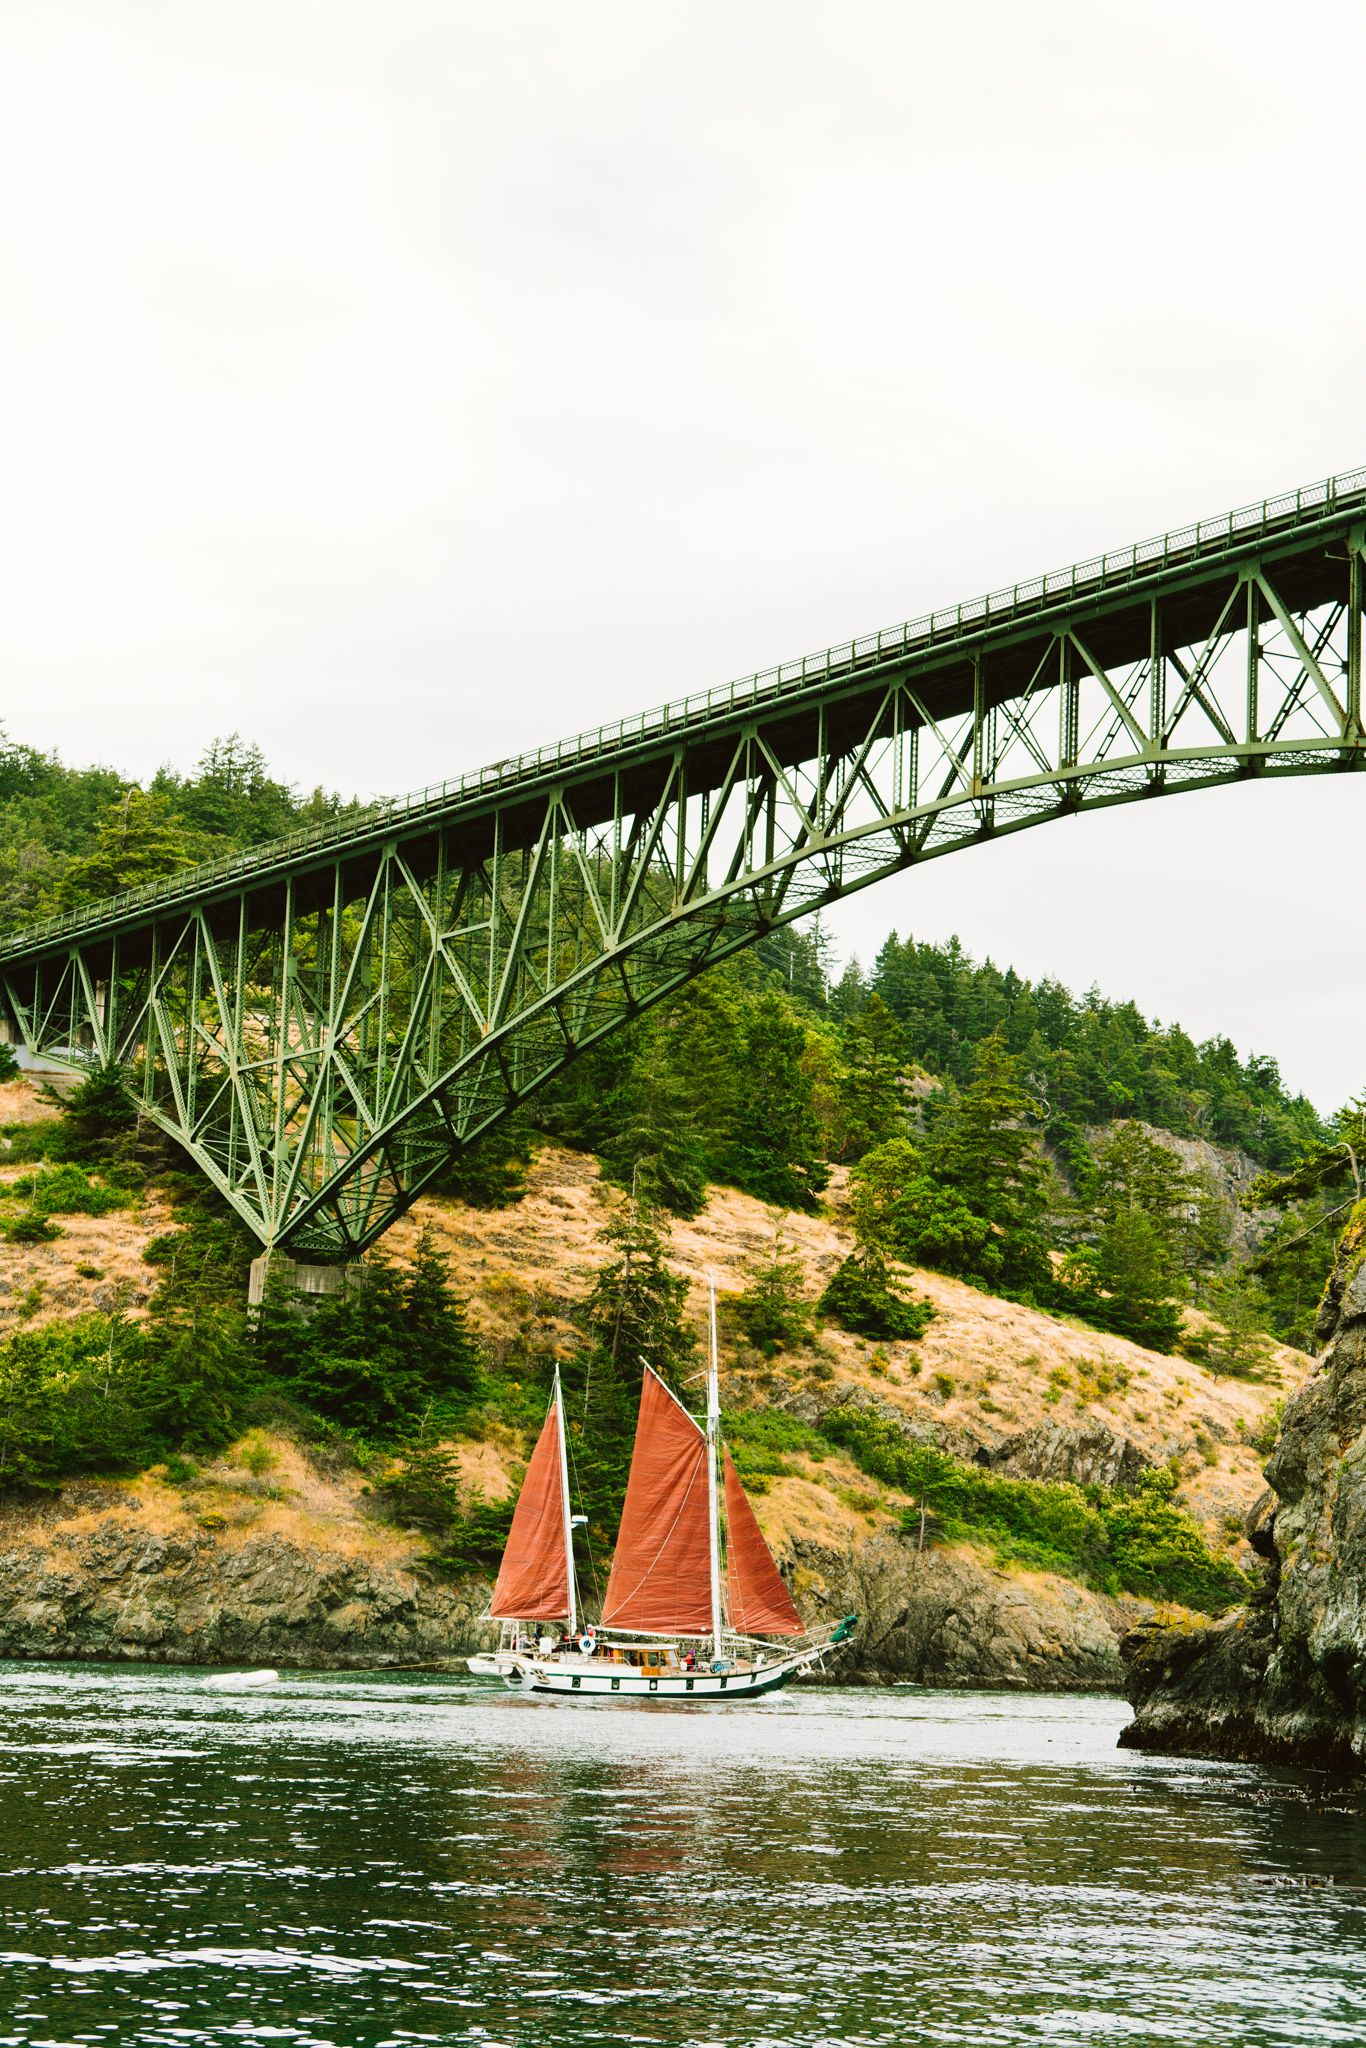 deception pass state park beautiful washington state photo rh pinterest com